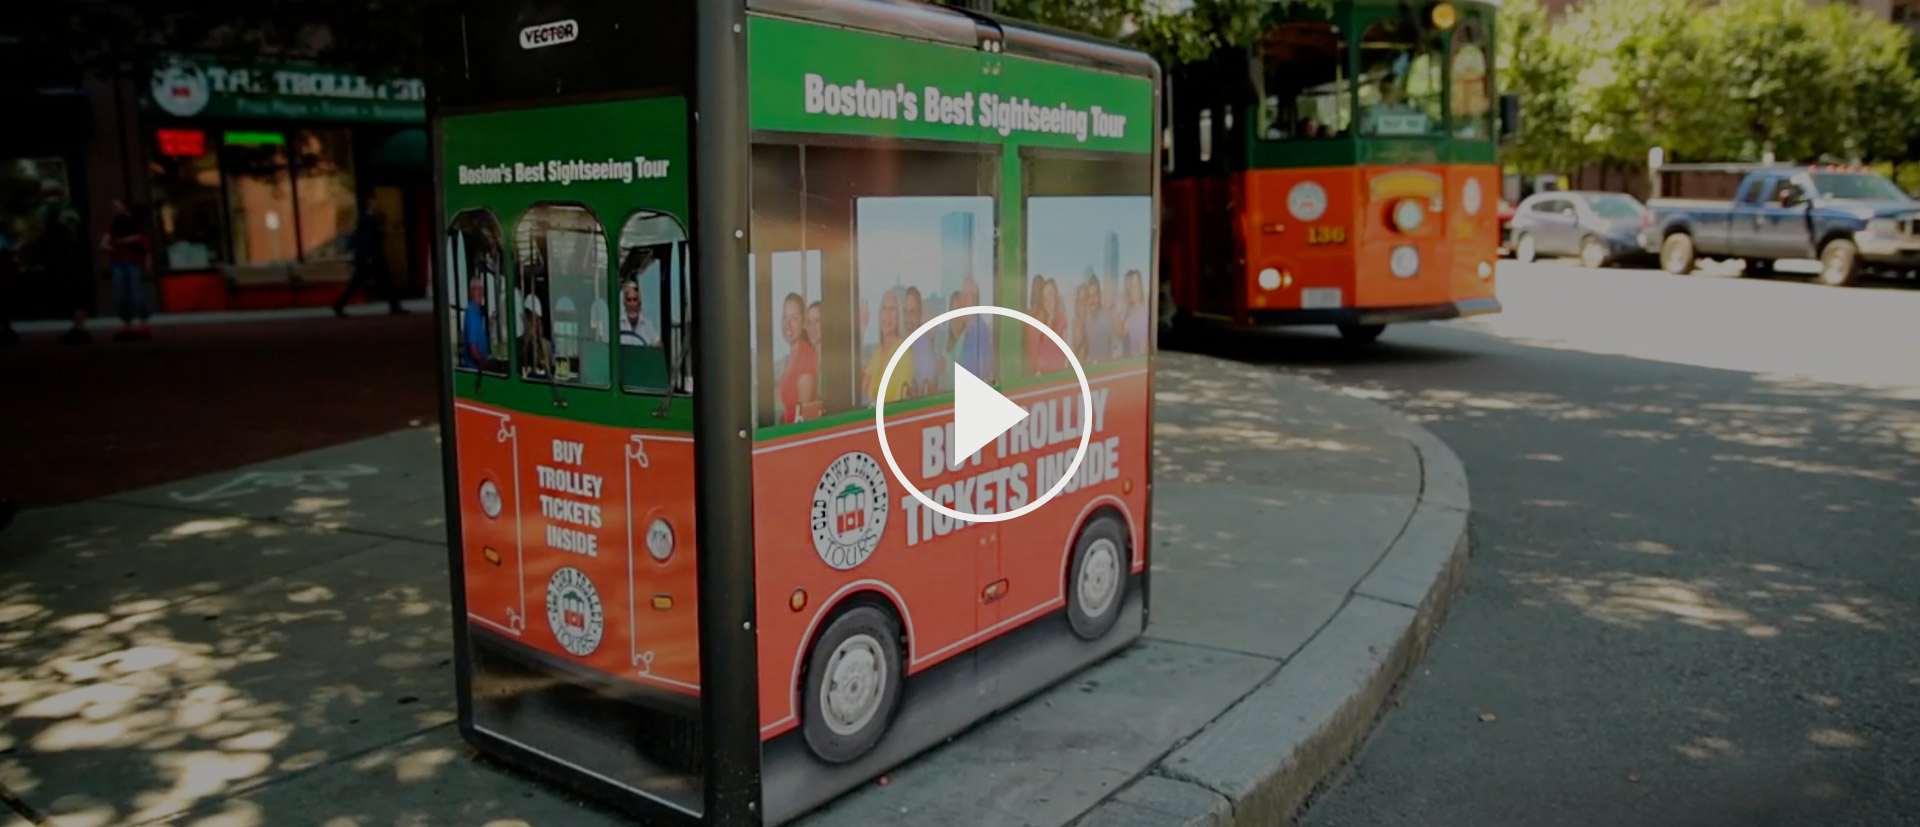 A Boston recycling bin made to look like an Old Town Trolley